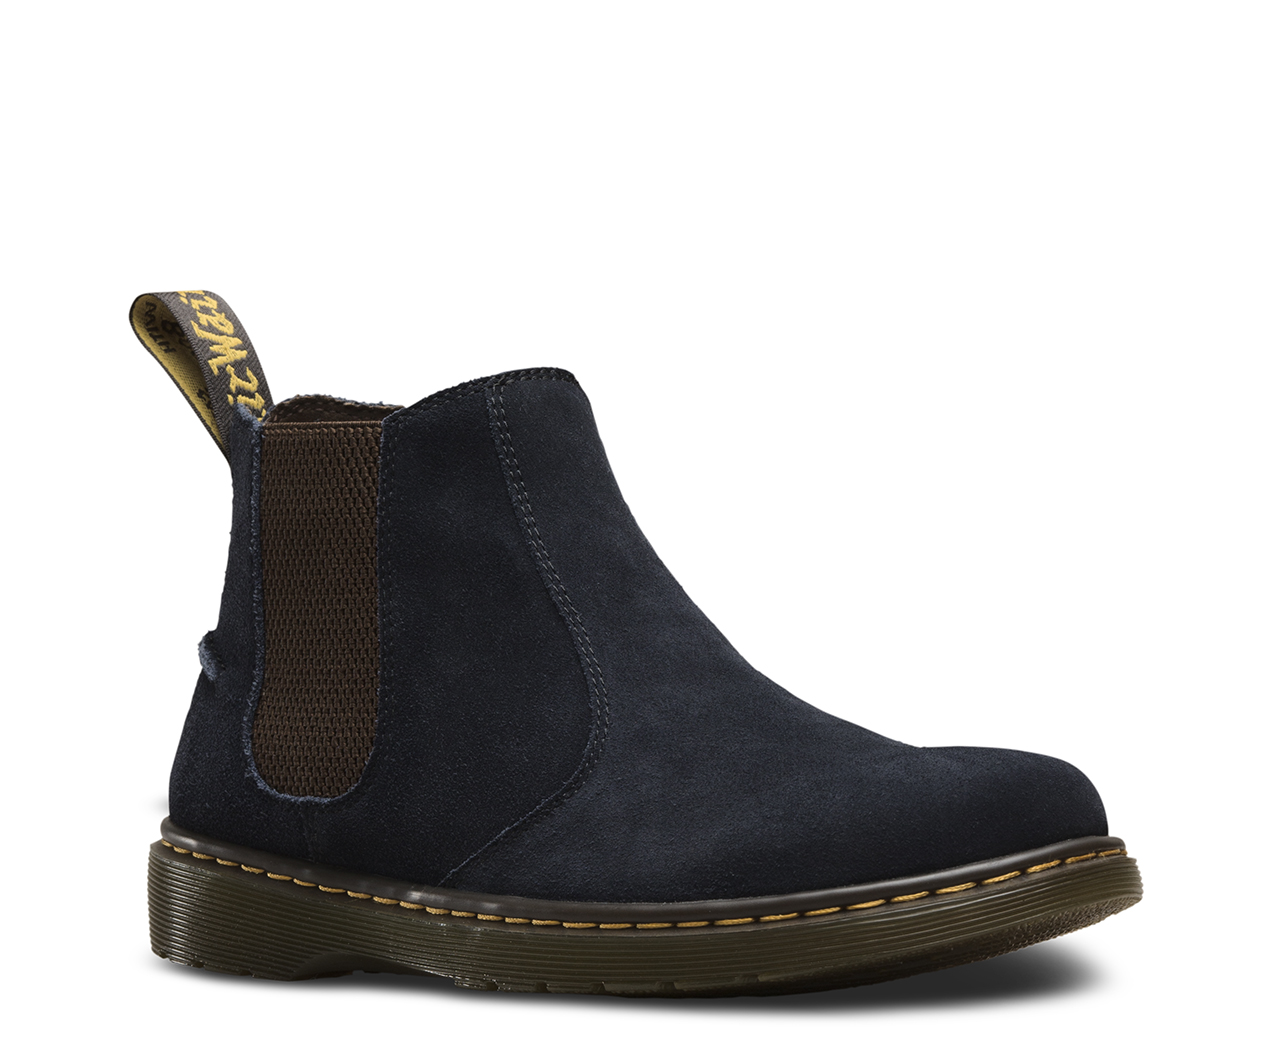 Sweetheart Dr Martens 90 Smooth UnisexAdult LaceUp Bootsx